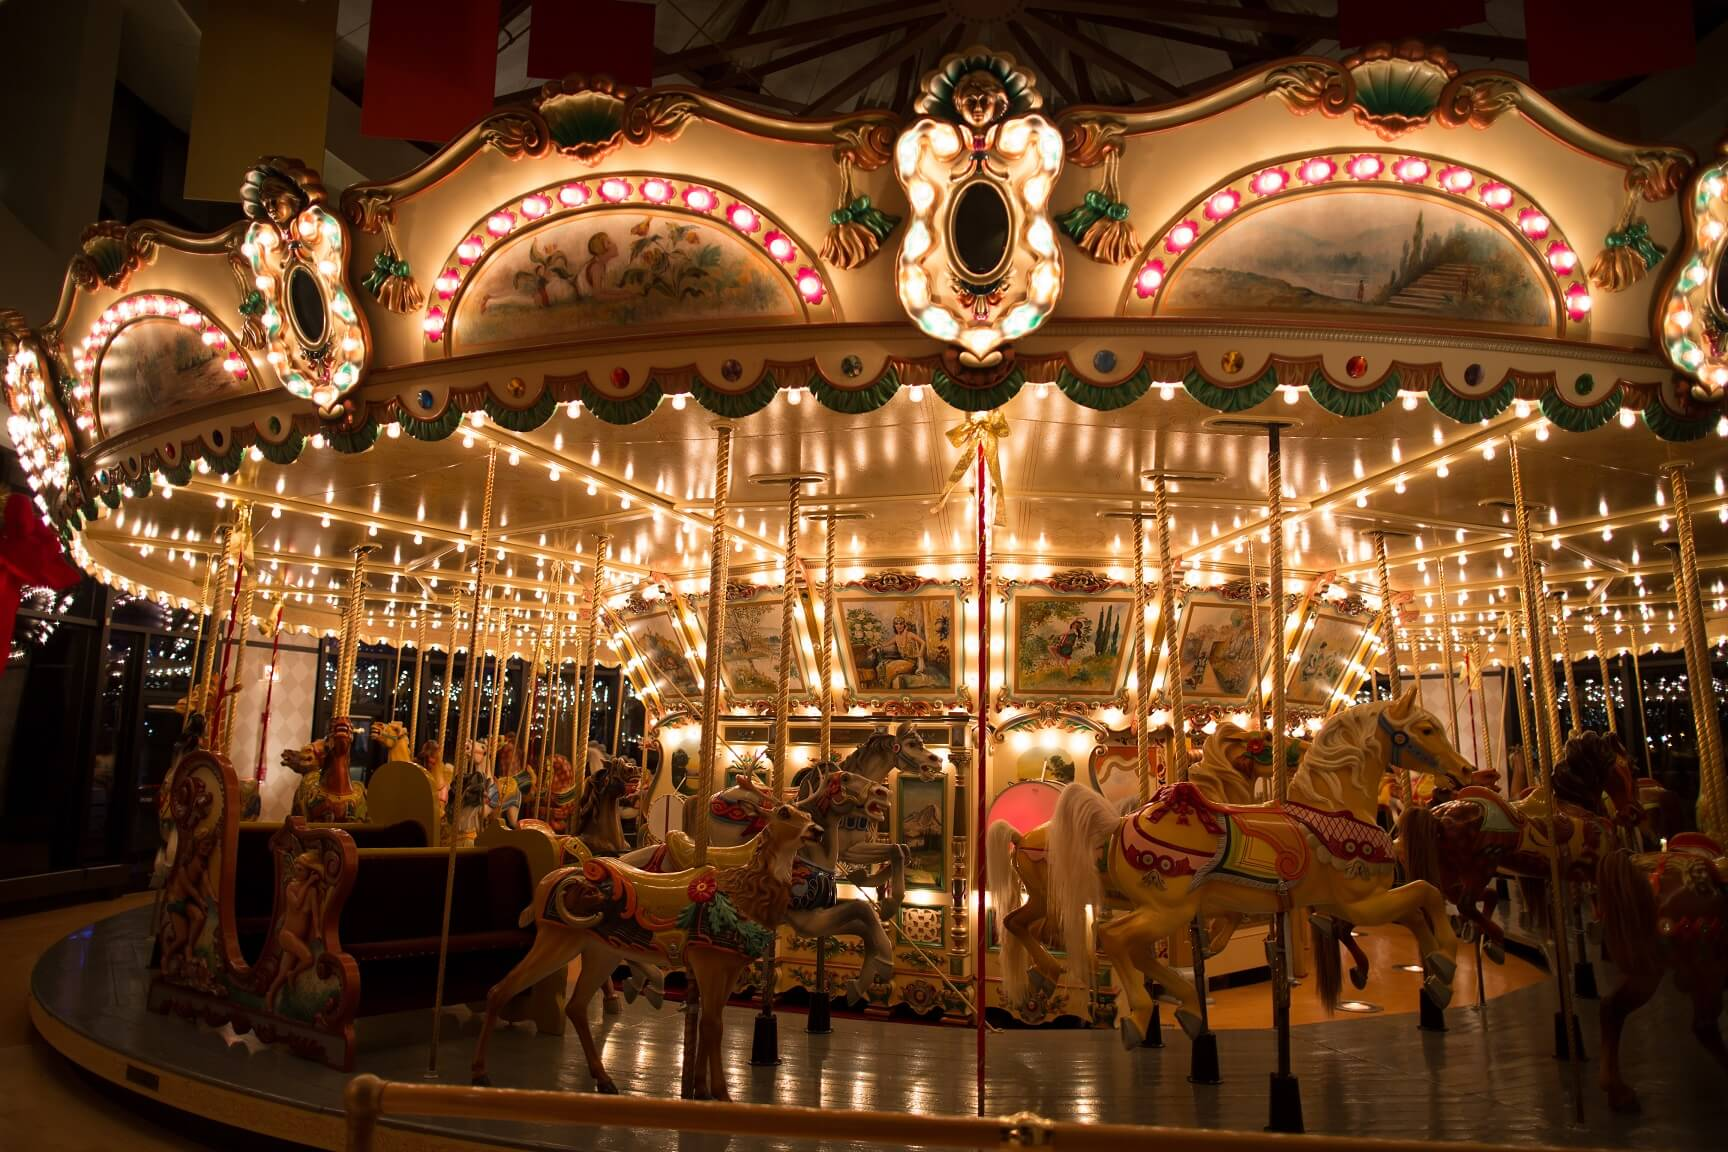 1928 Spillman Carousel lit up at night